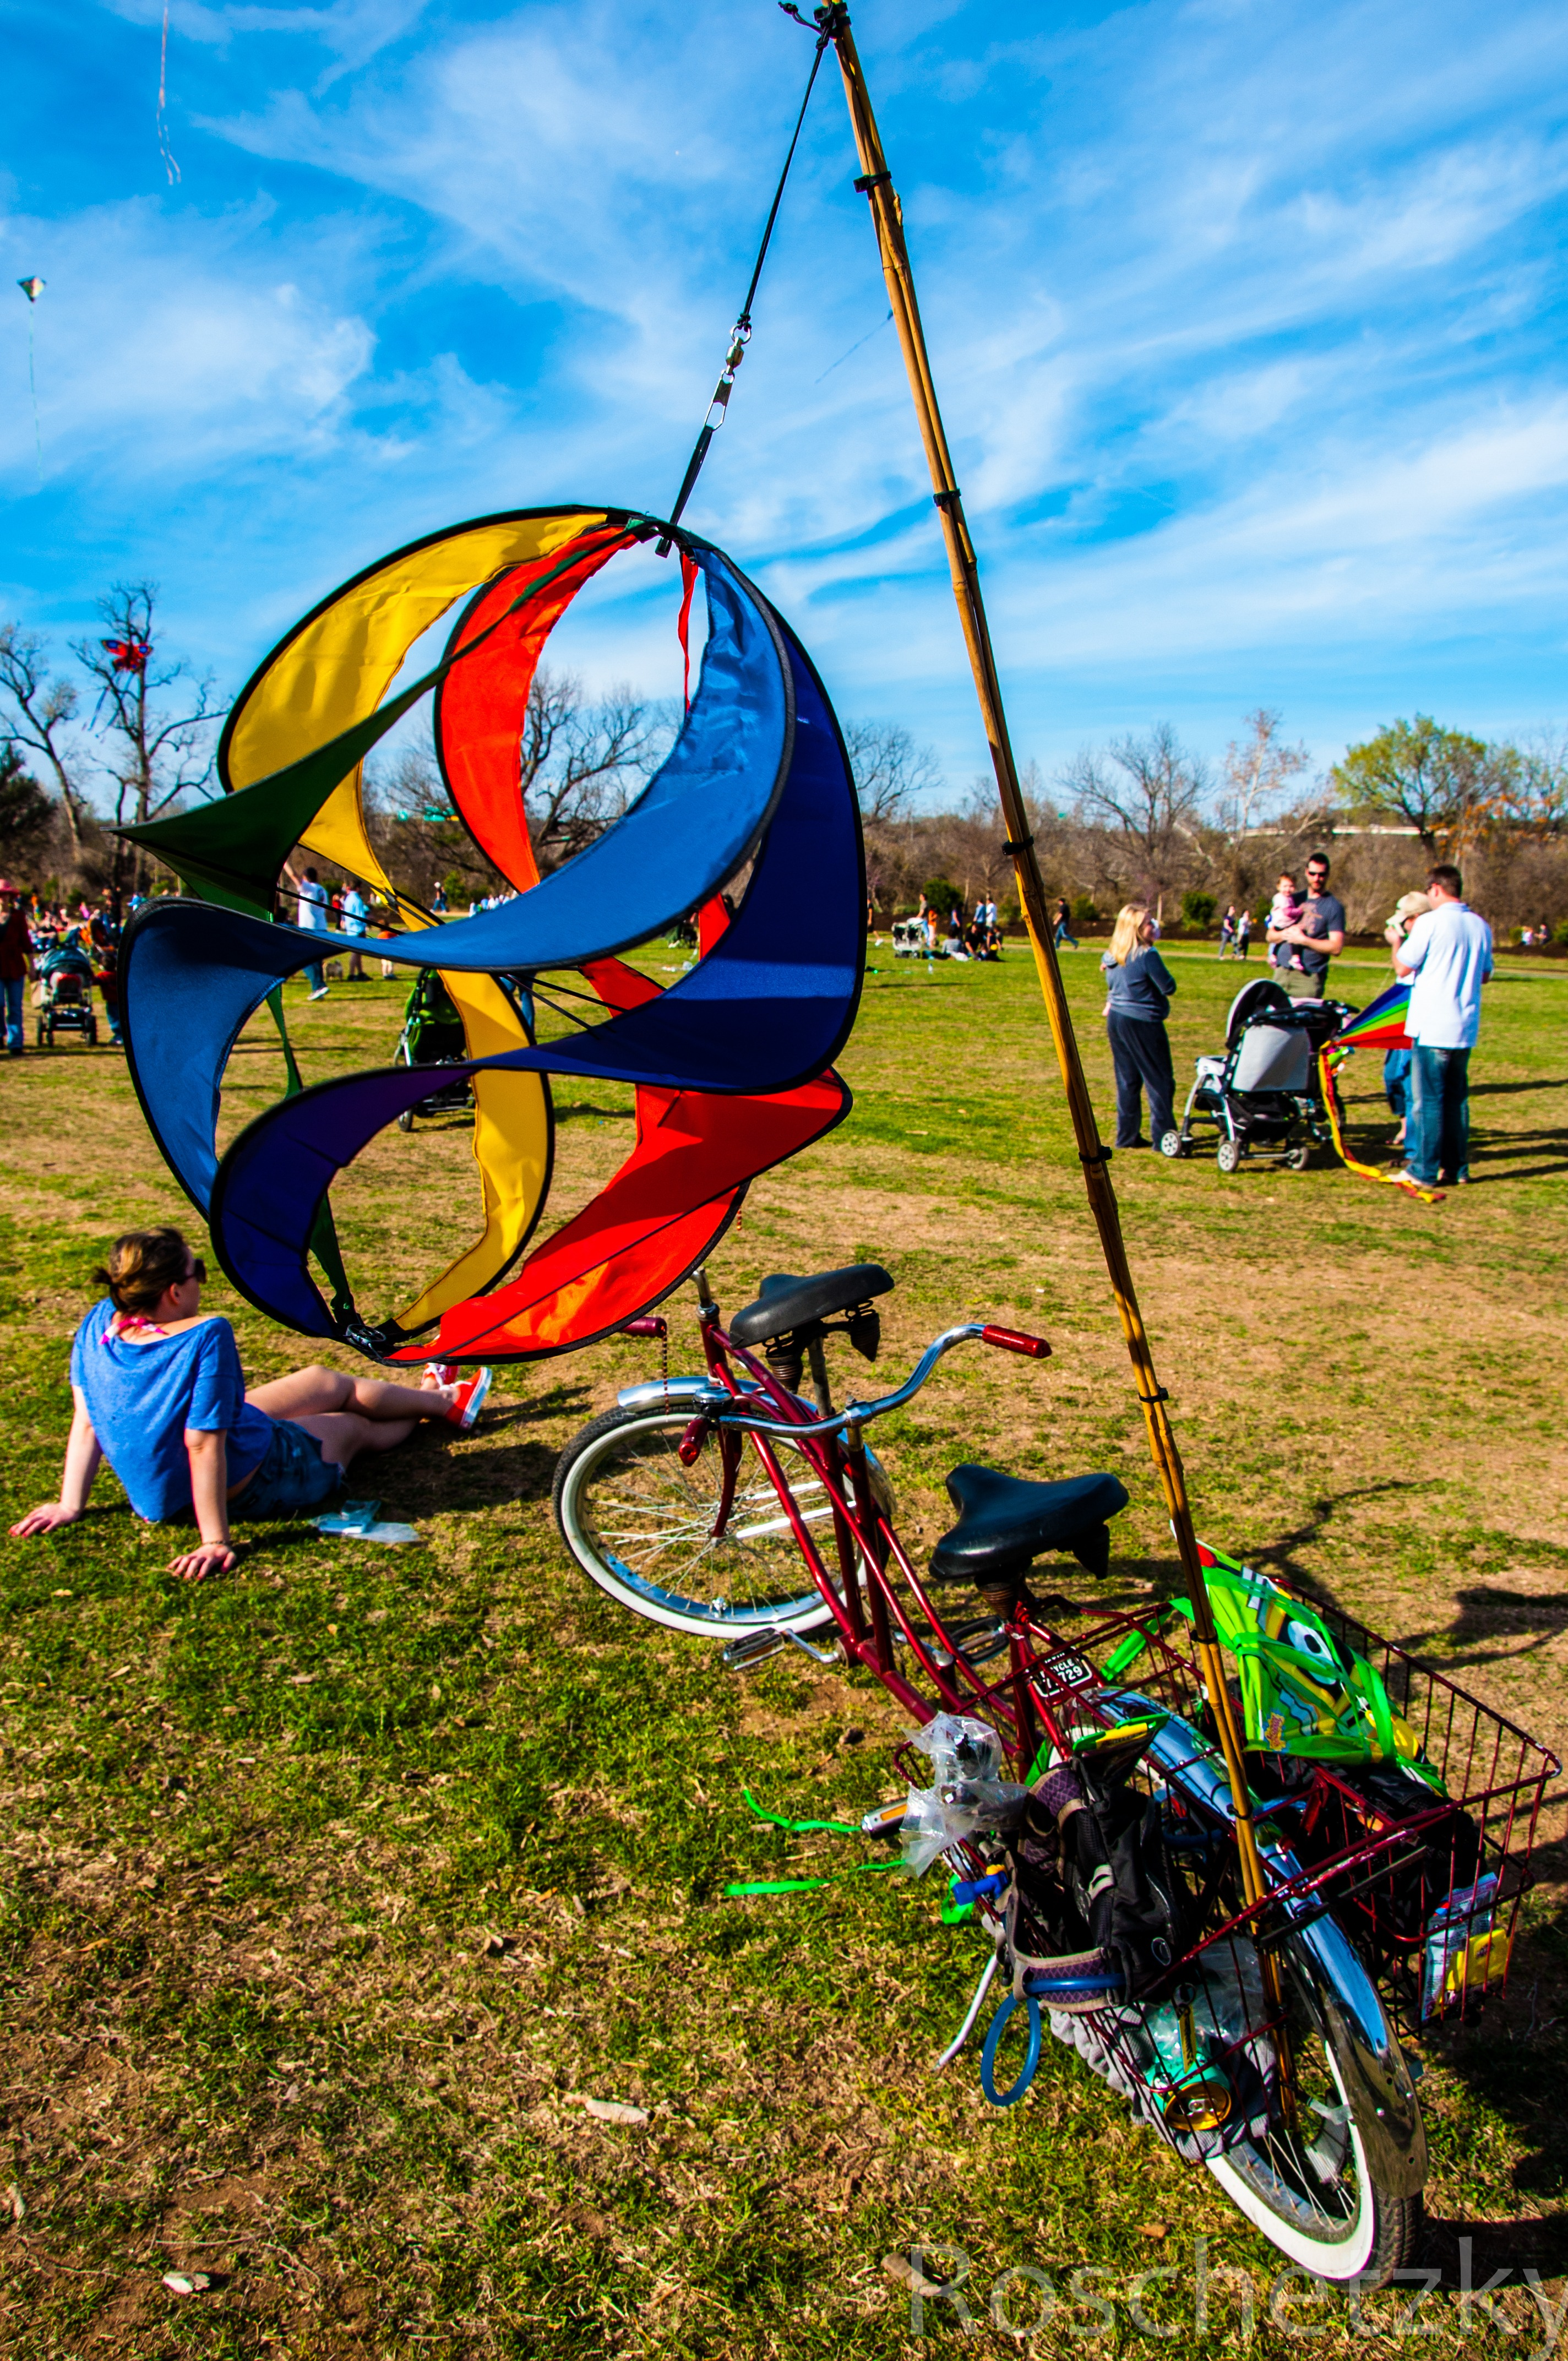 Person sitting on ground with big colorful kite and vintage bikes